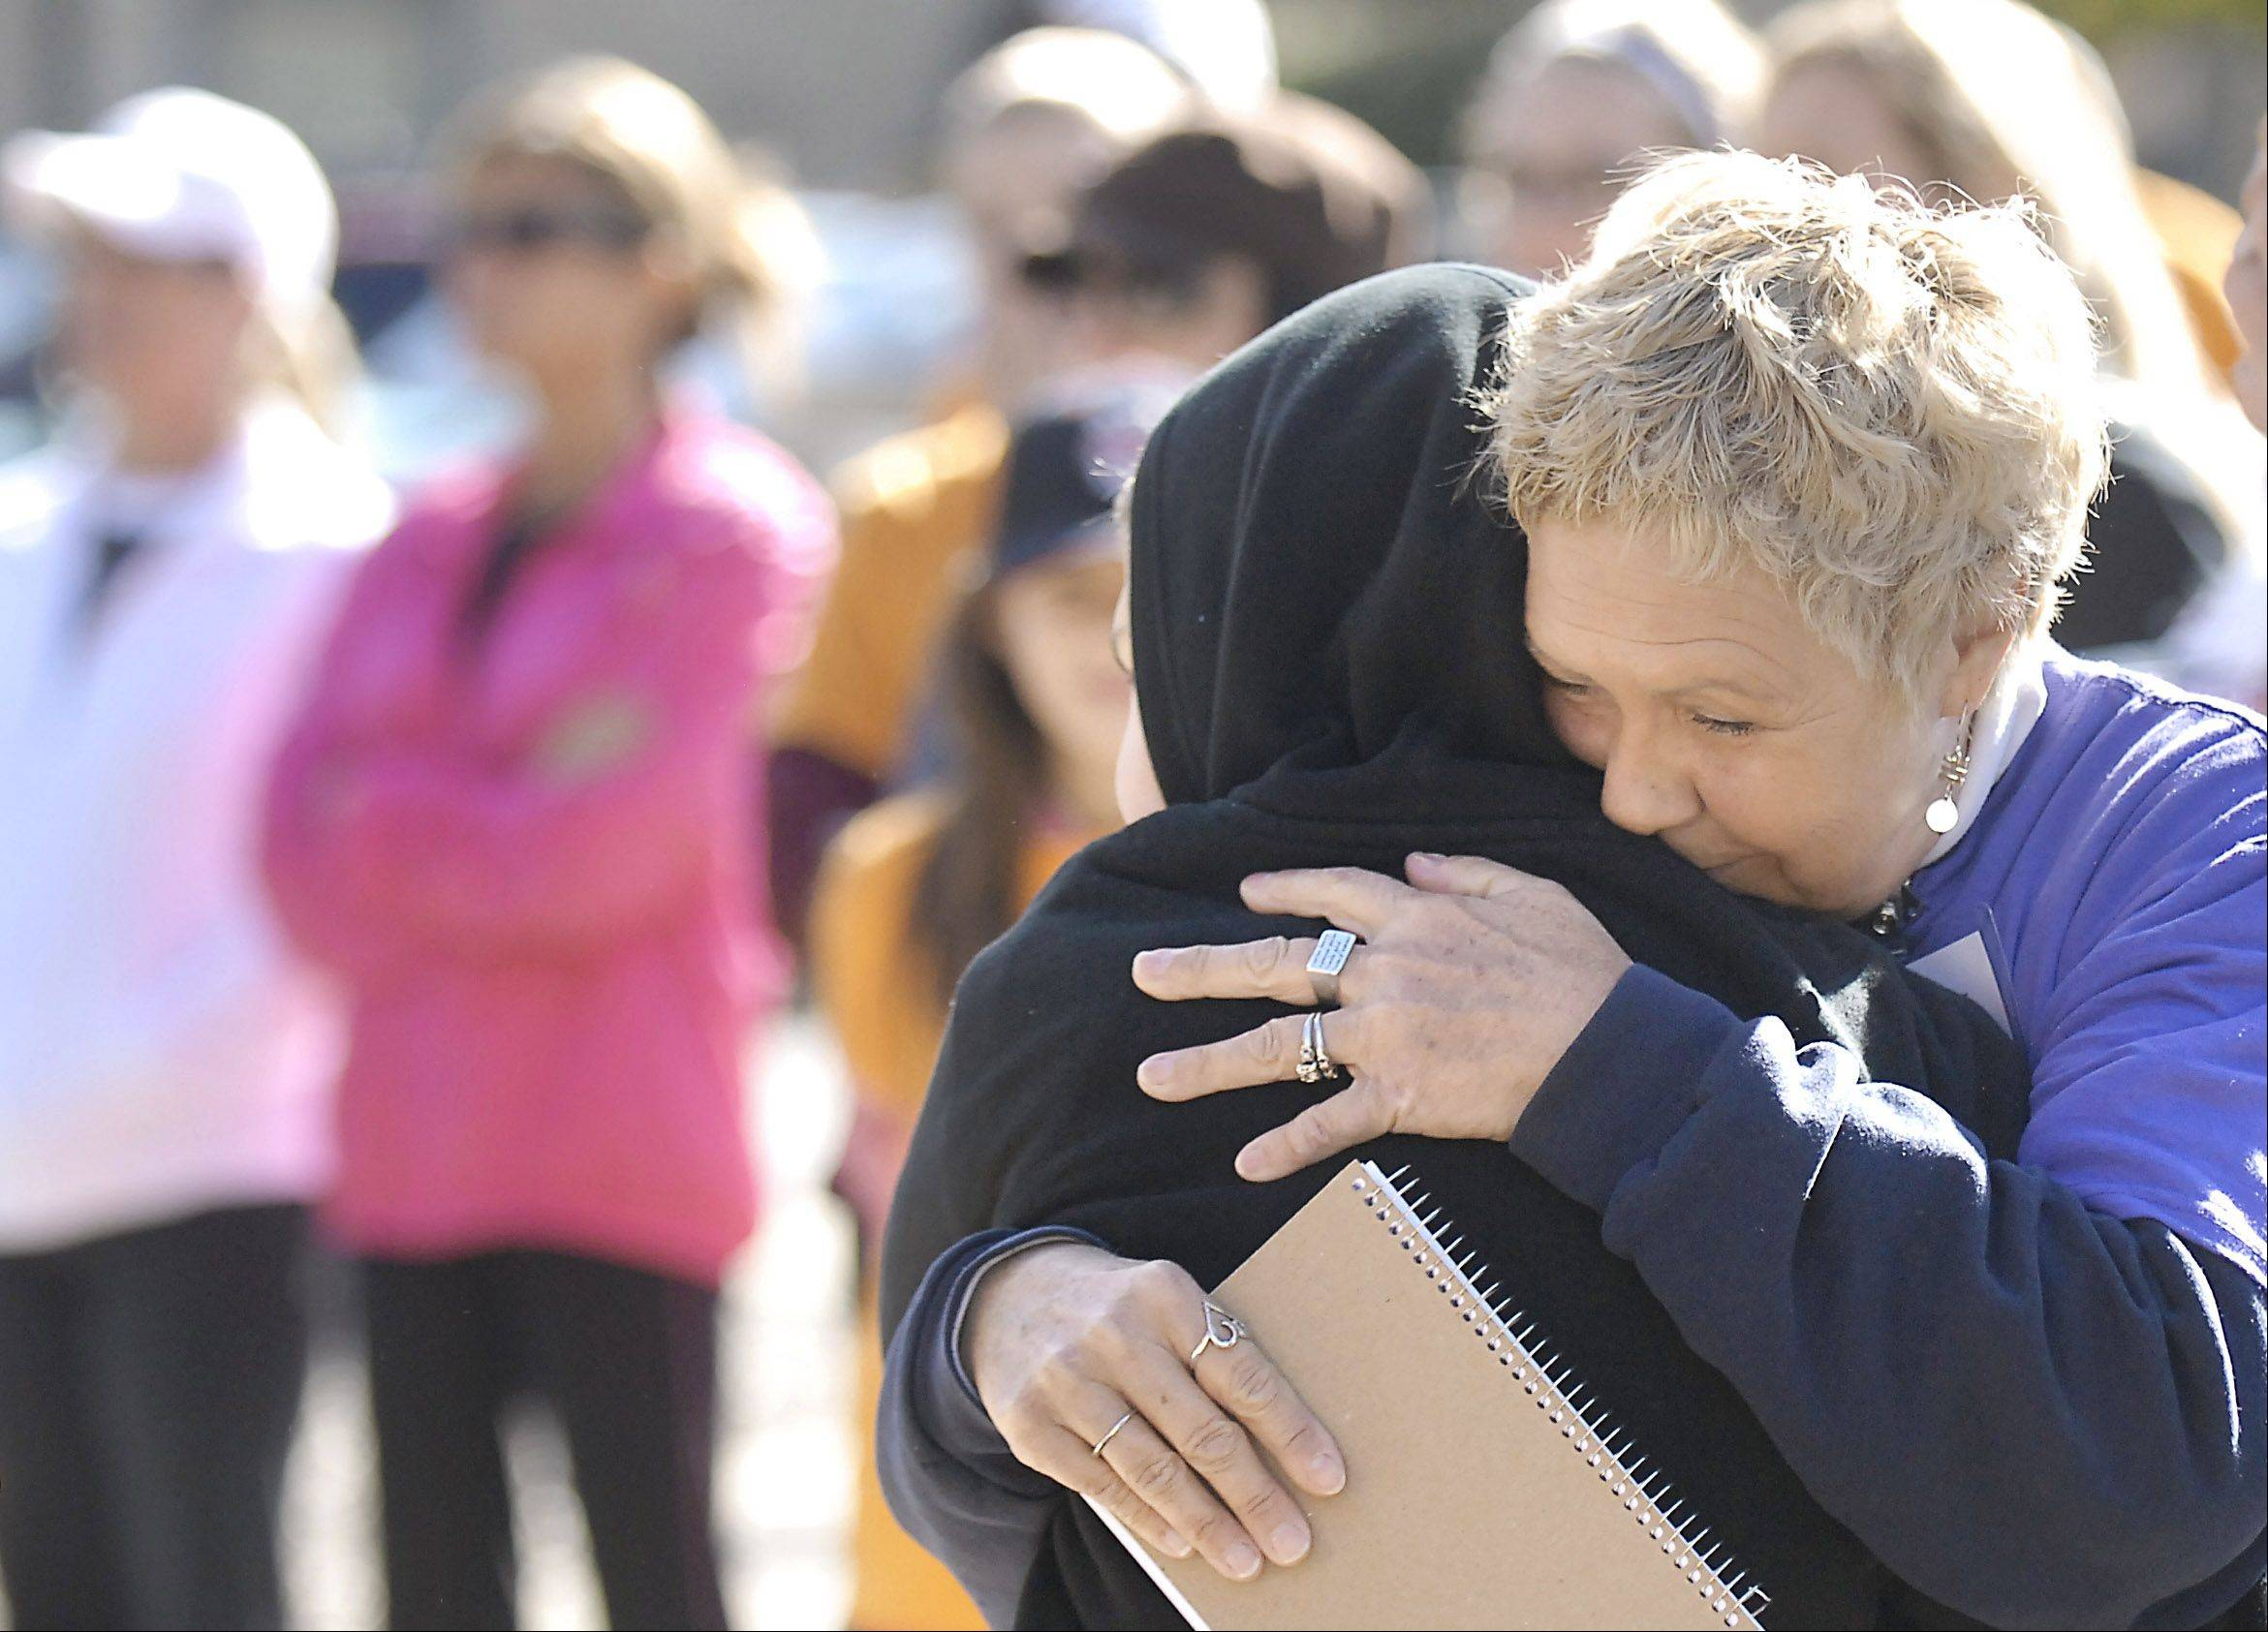 Jan Hanczar of St. Charles hugs her grandson, Calvin Carlson, 9, also of St. Charles, after speaking on Saturday about how Fox Valley Volunteer Hospice helped her family during difficult times. Stefani Hanczar, Jan Hanczar's daughter and Calvin's mother, died in 2008. Hanczar also lost her son Jamie Hall in 2008 and her brother David Gordon in 2010.